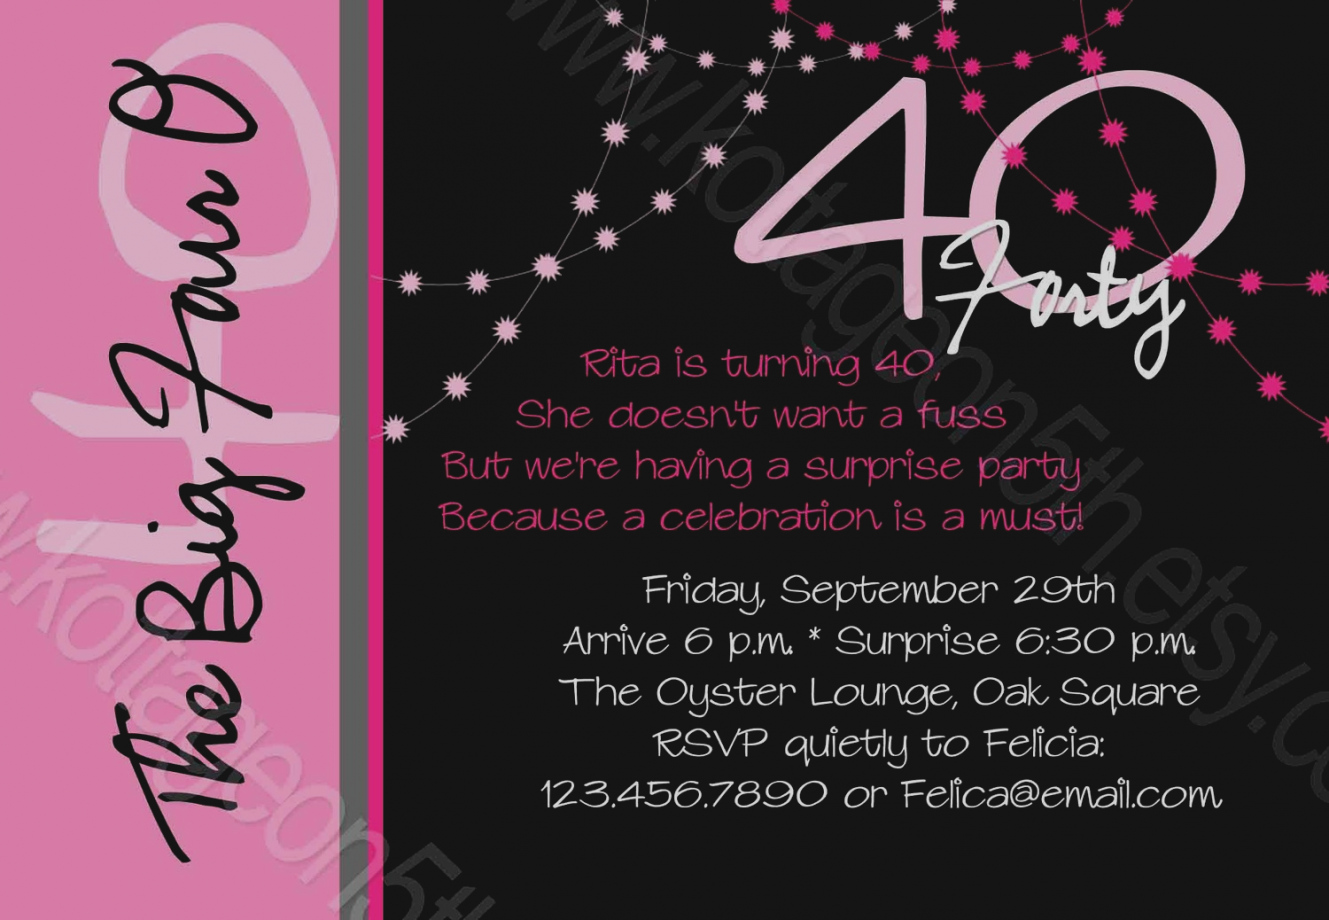 40th birthday party invitation designs ; wonderful-40th-birthday-party-invitations-uk-tips-to-write-invitation-wording-all-ideas